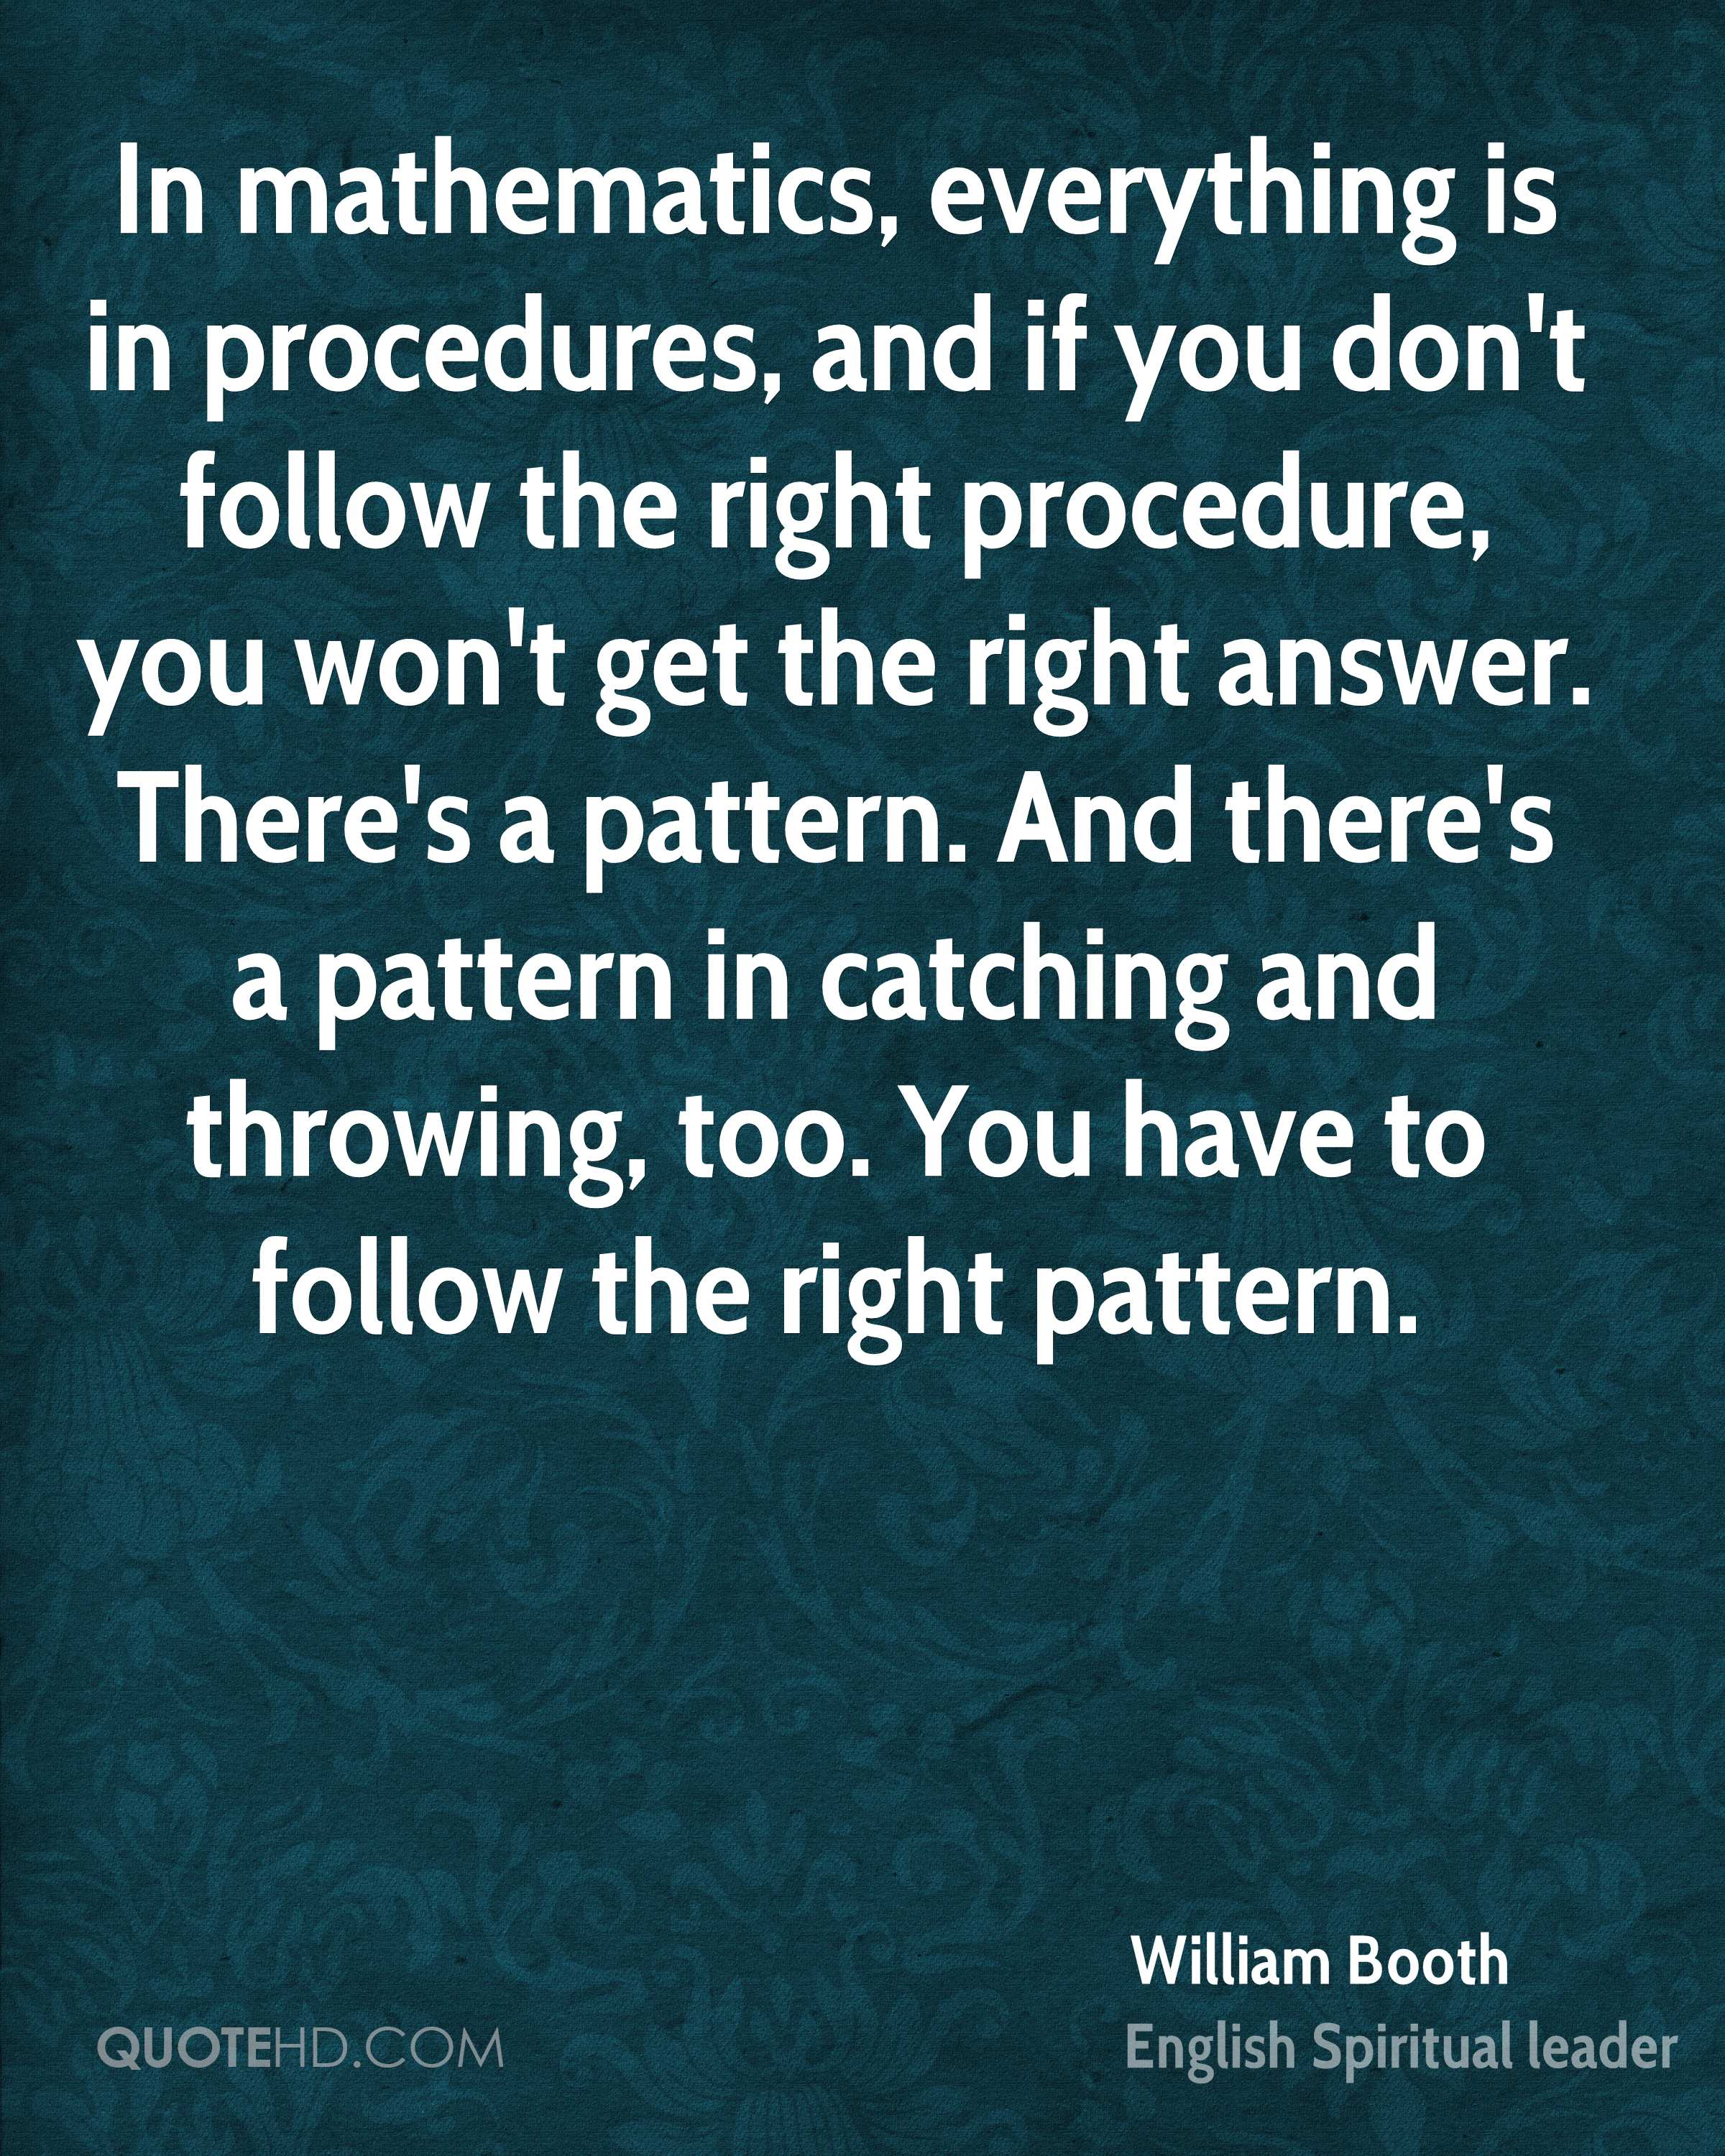 In mathematics, everything is in procedures, and if you don't follow the right procedure, you won't get the right answer. There's a pattern. And there's a pattern in catching and throwing, too. You have to follow the right pattern.